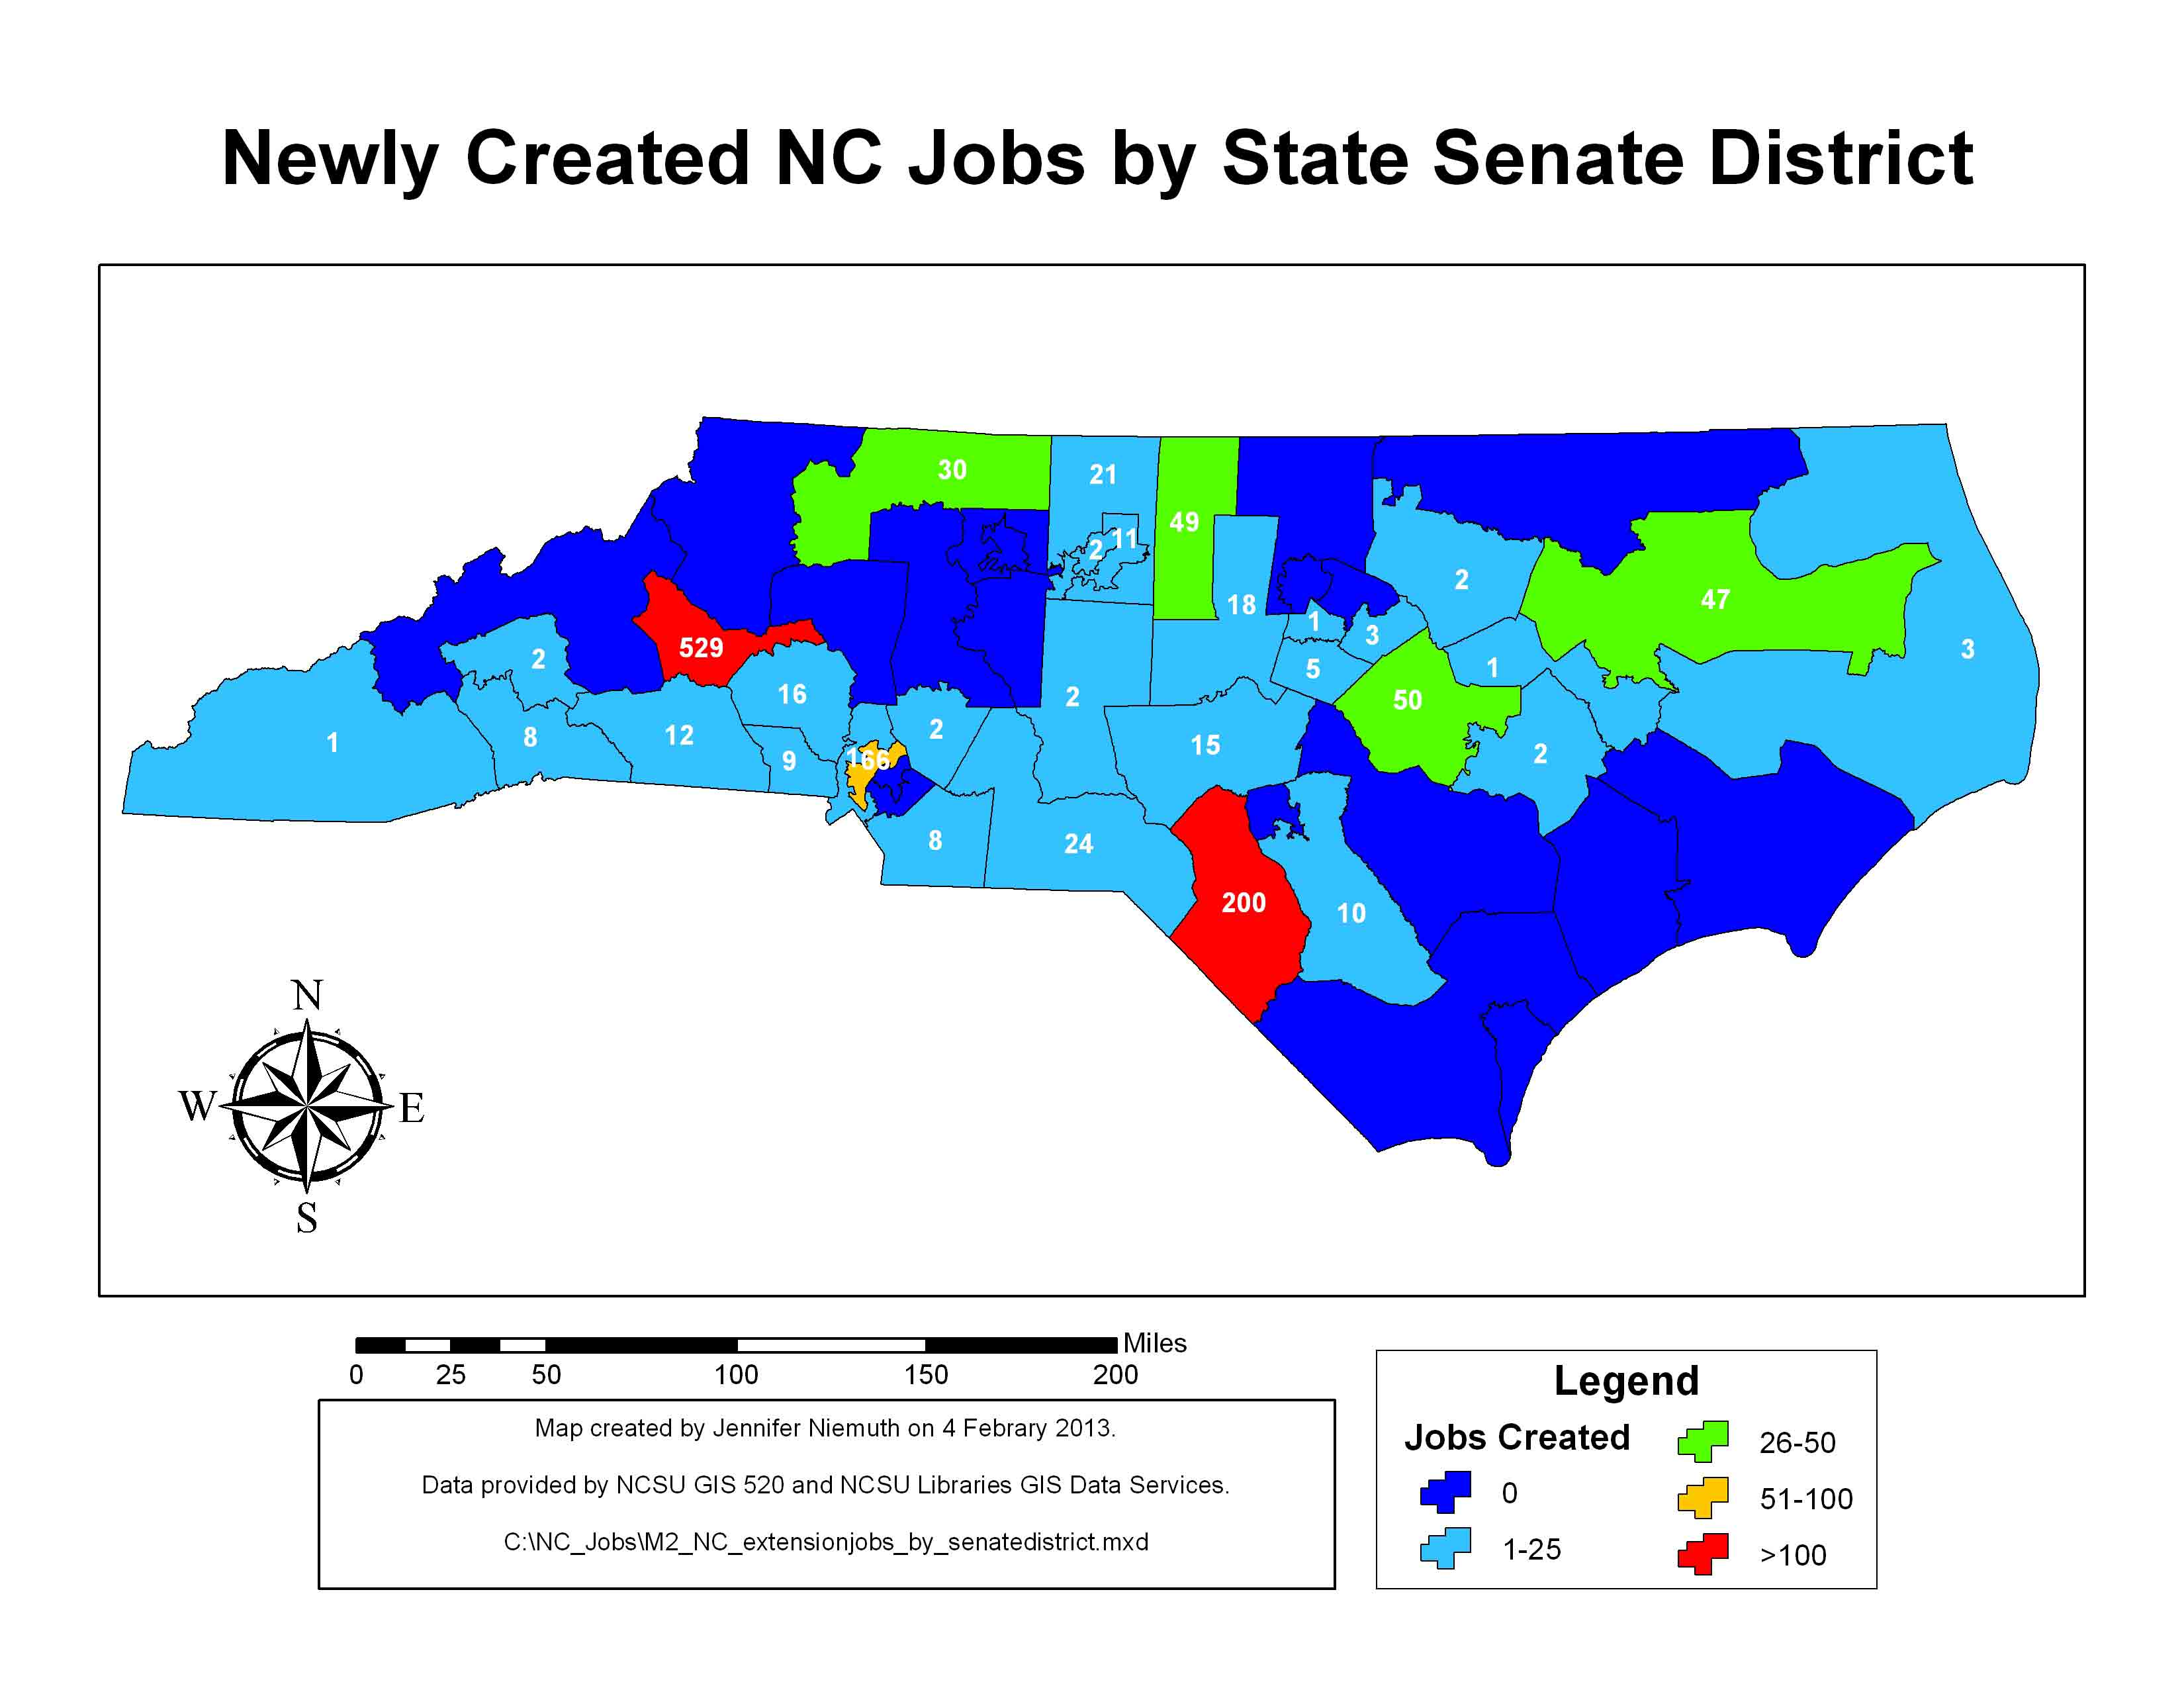 New jobs by state senate district